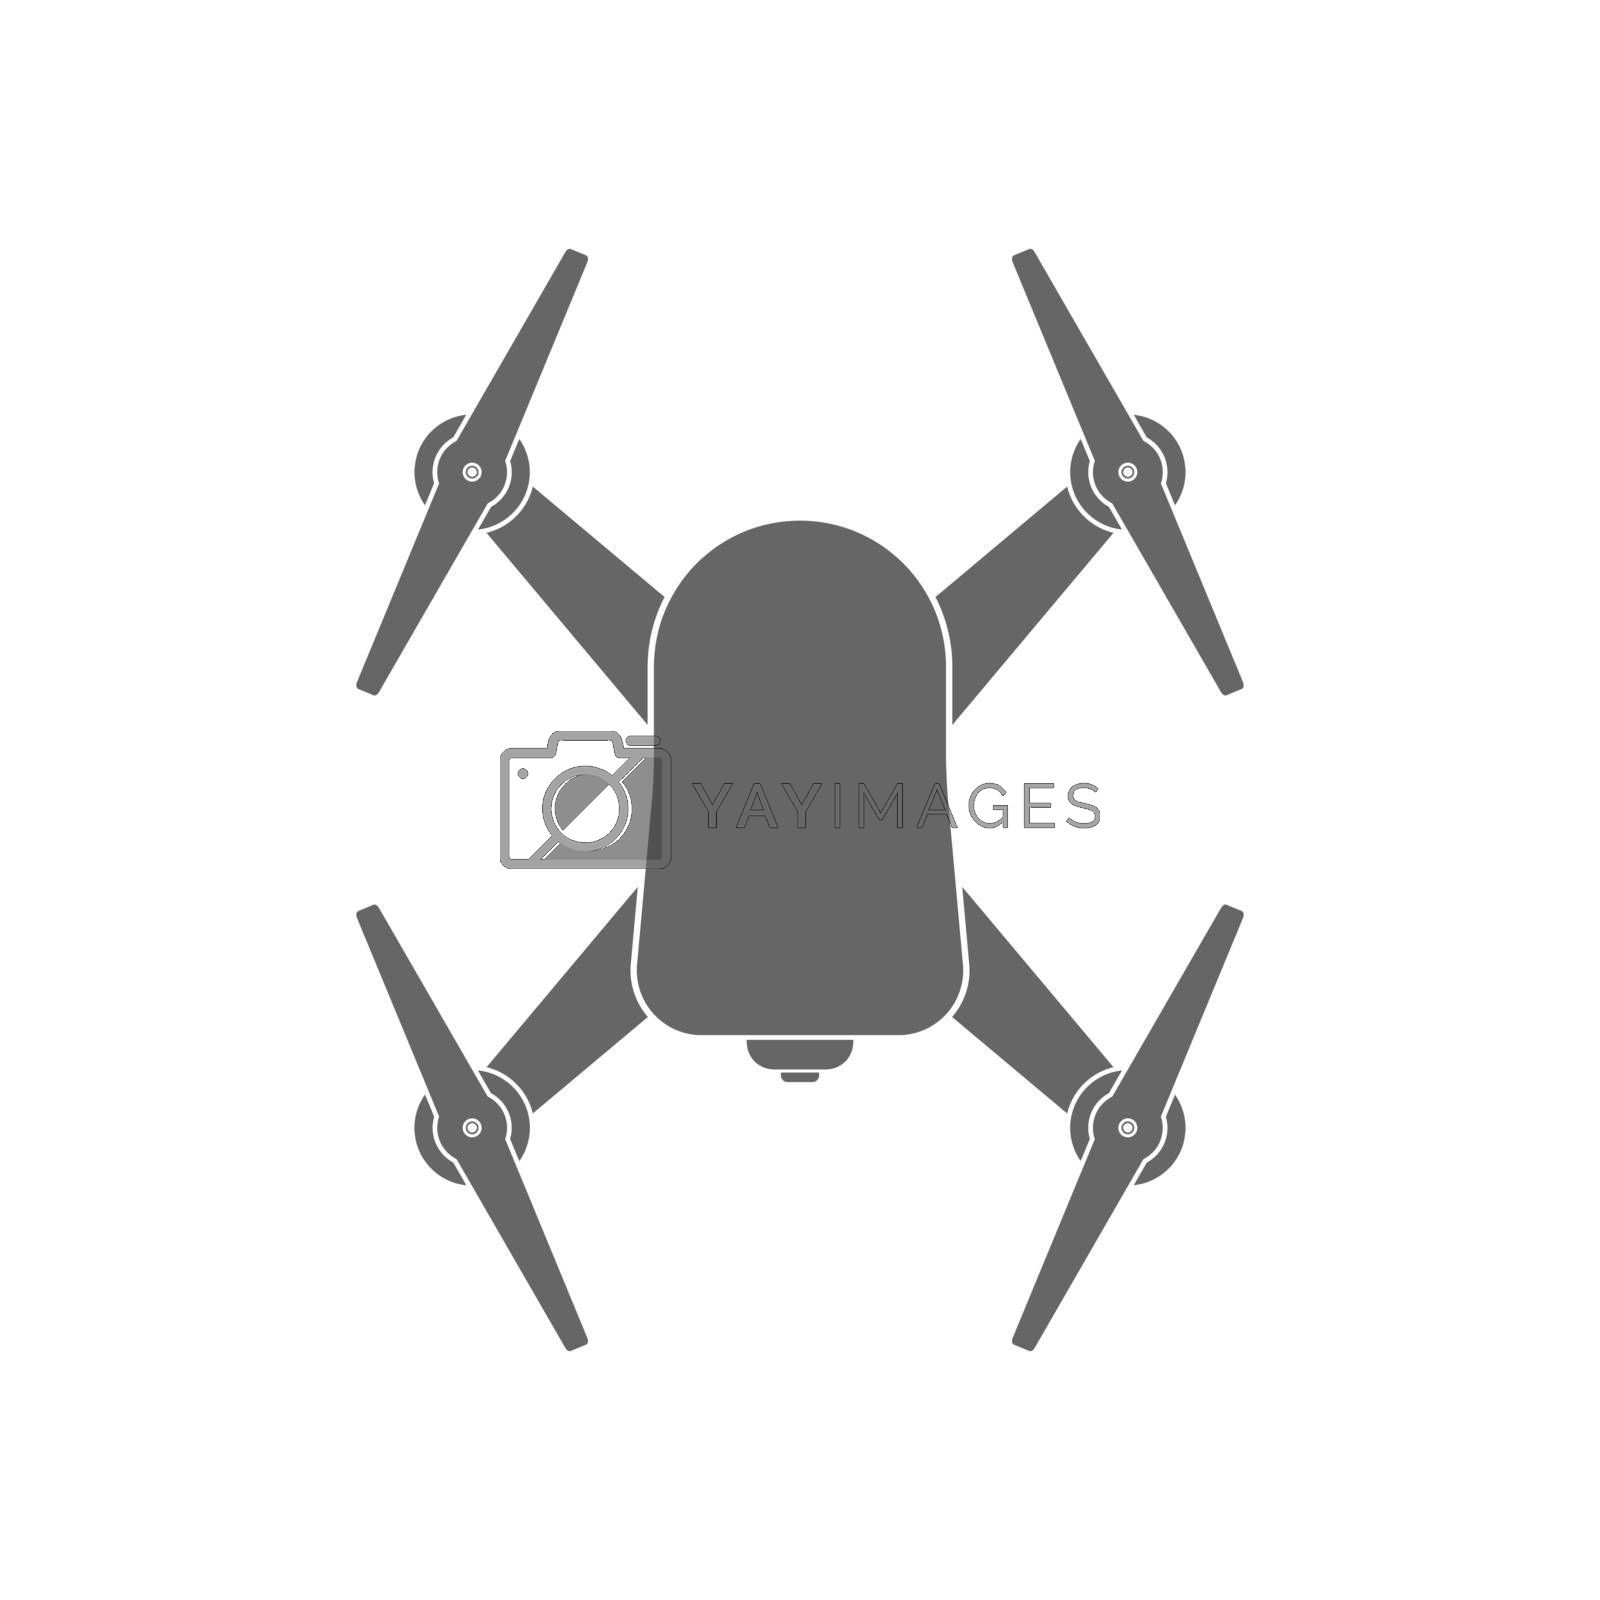 Quadcopter with a camera. Vector illustration isolated on a white background.